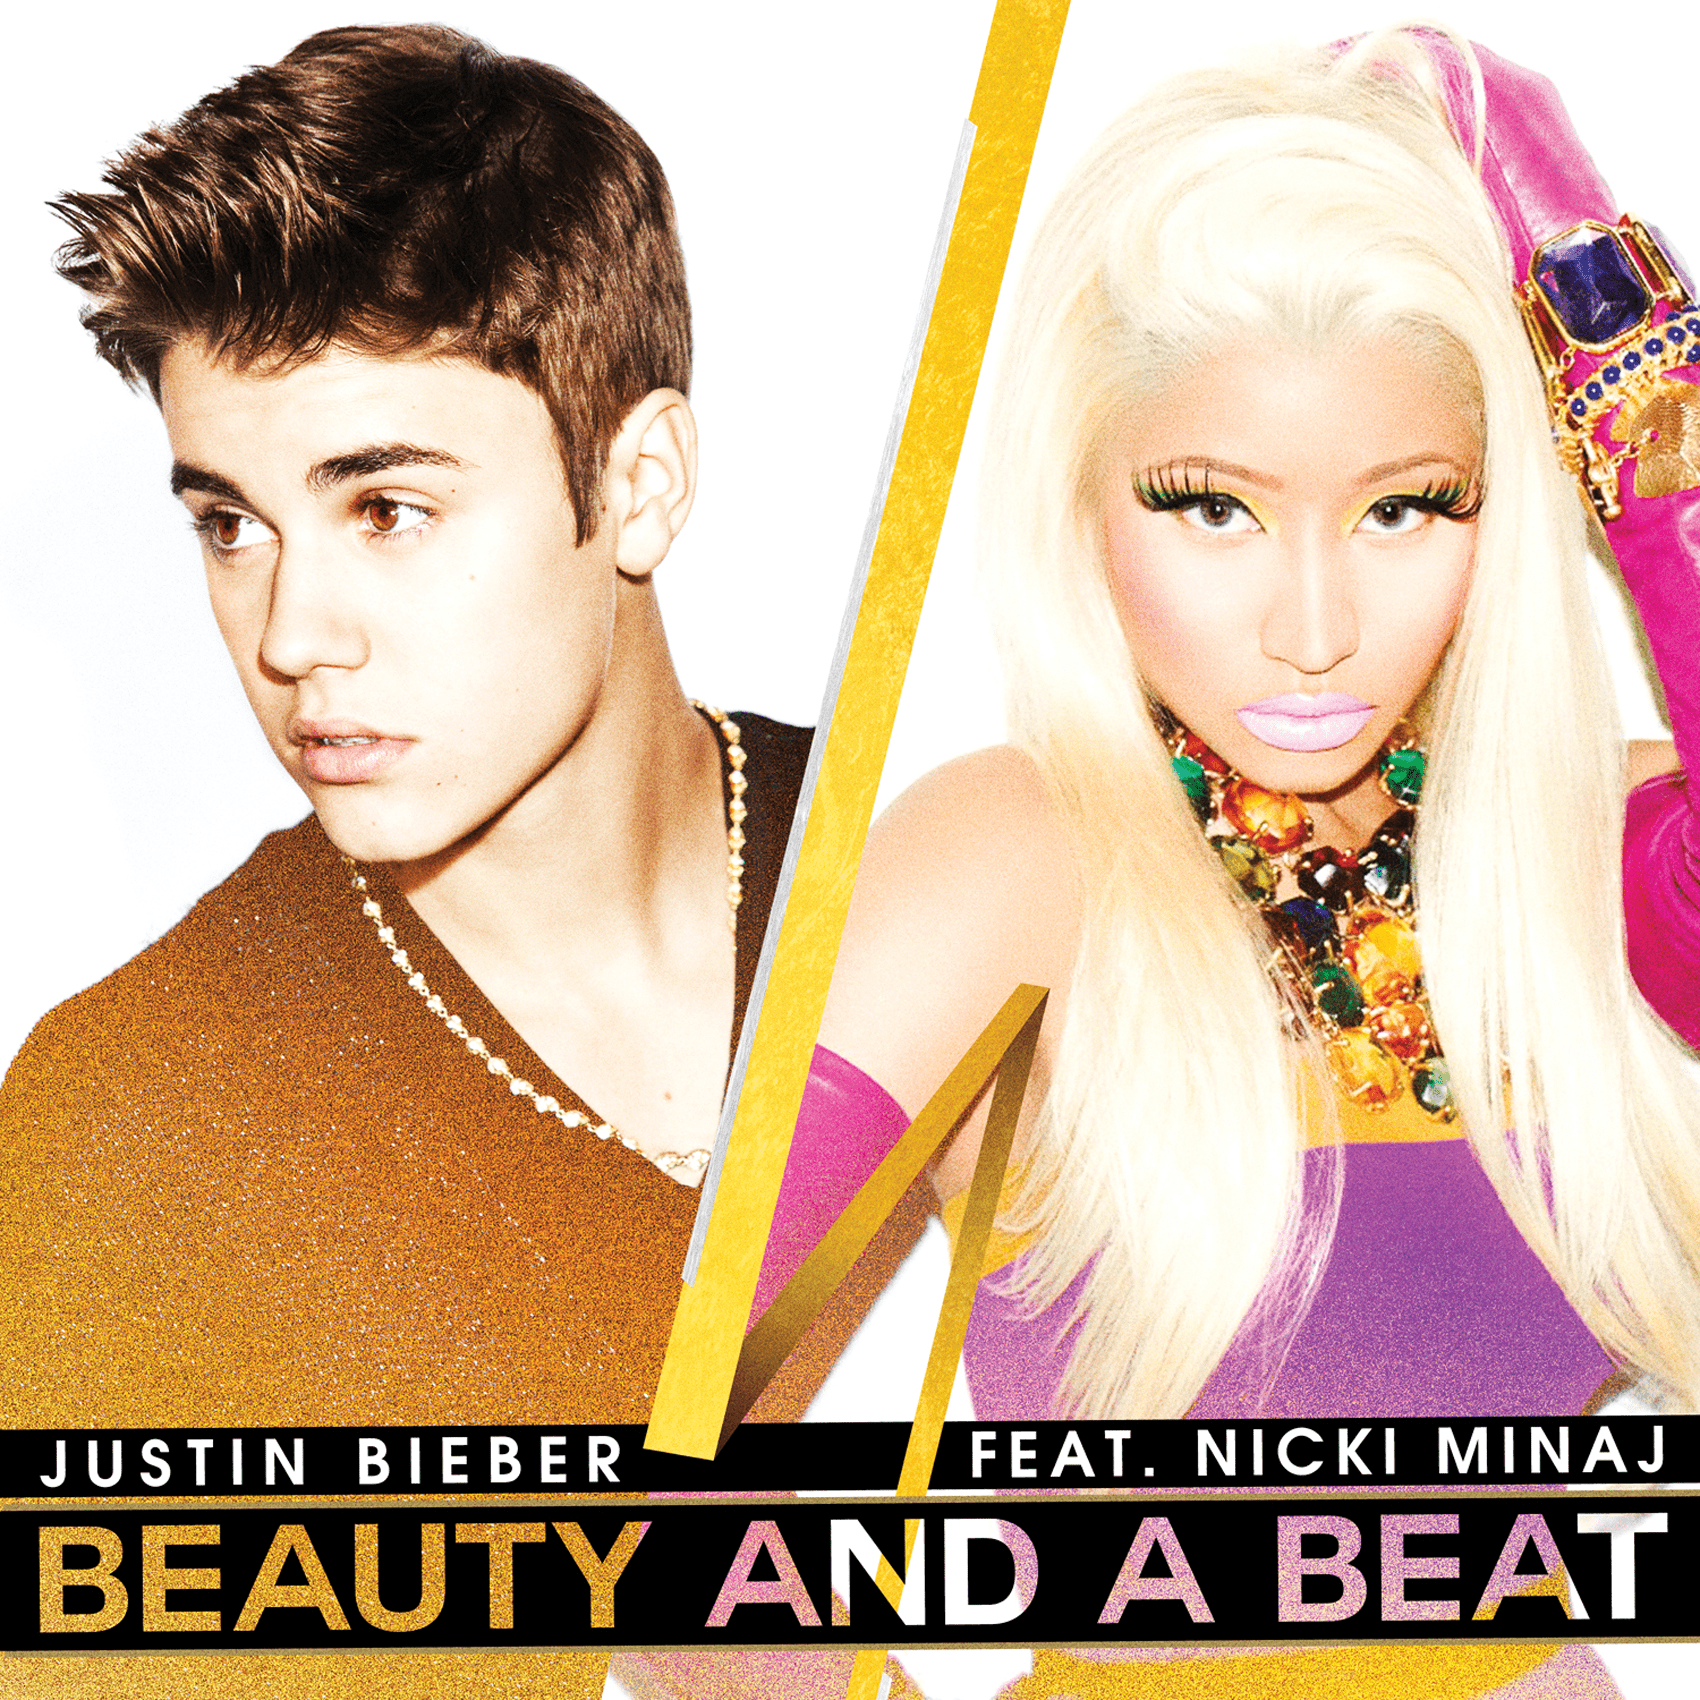 Justin Bieber, Beauty and a Beat featuring Nicki Minaj cover